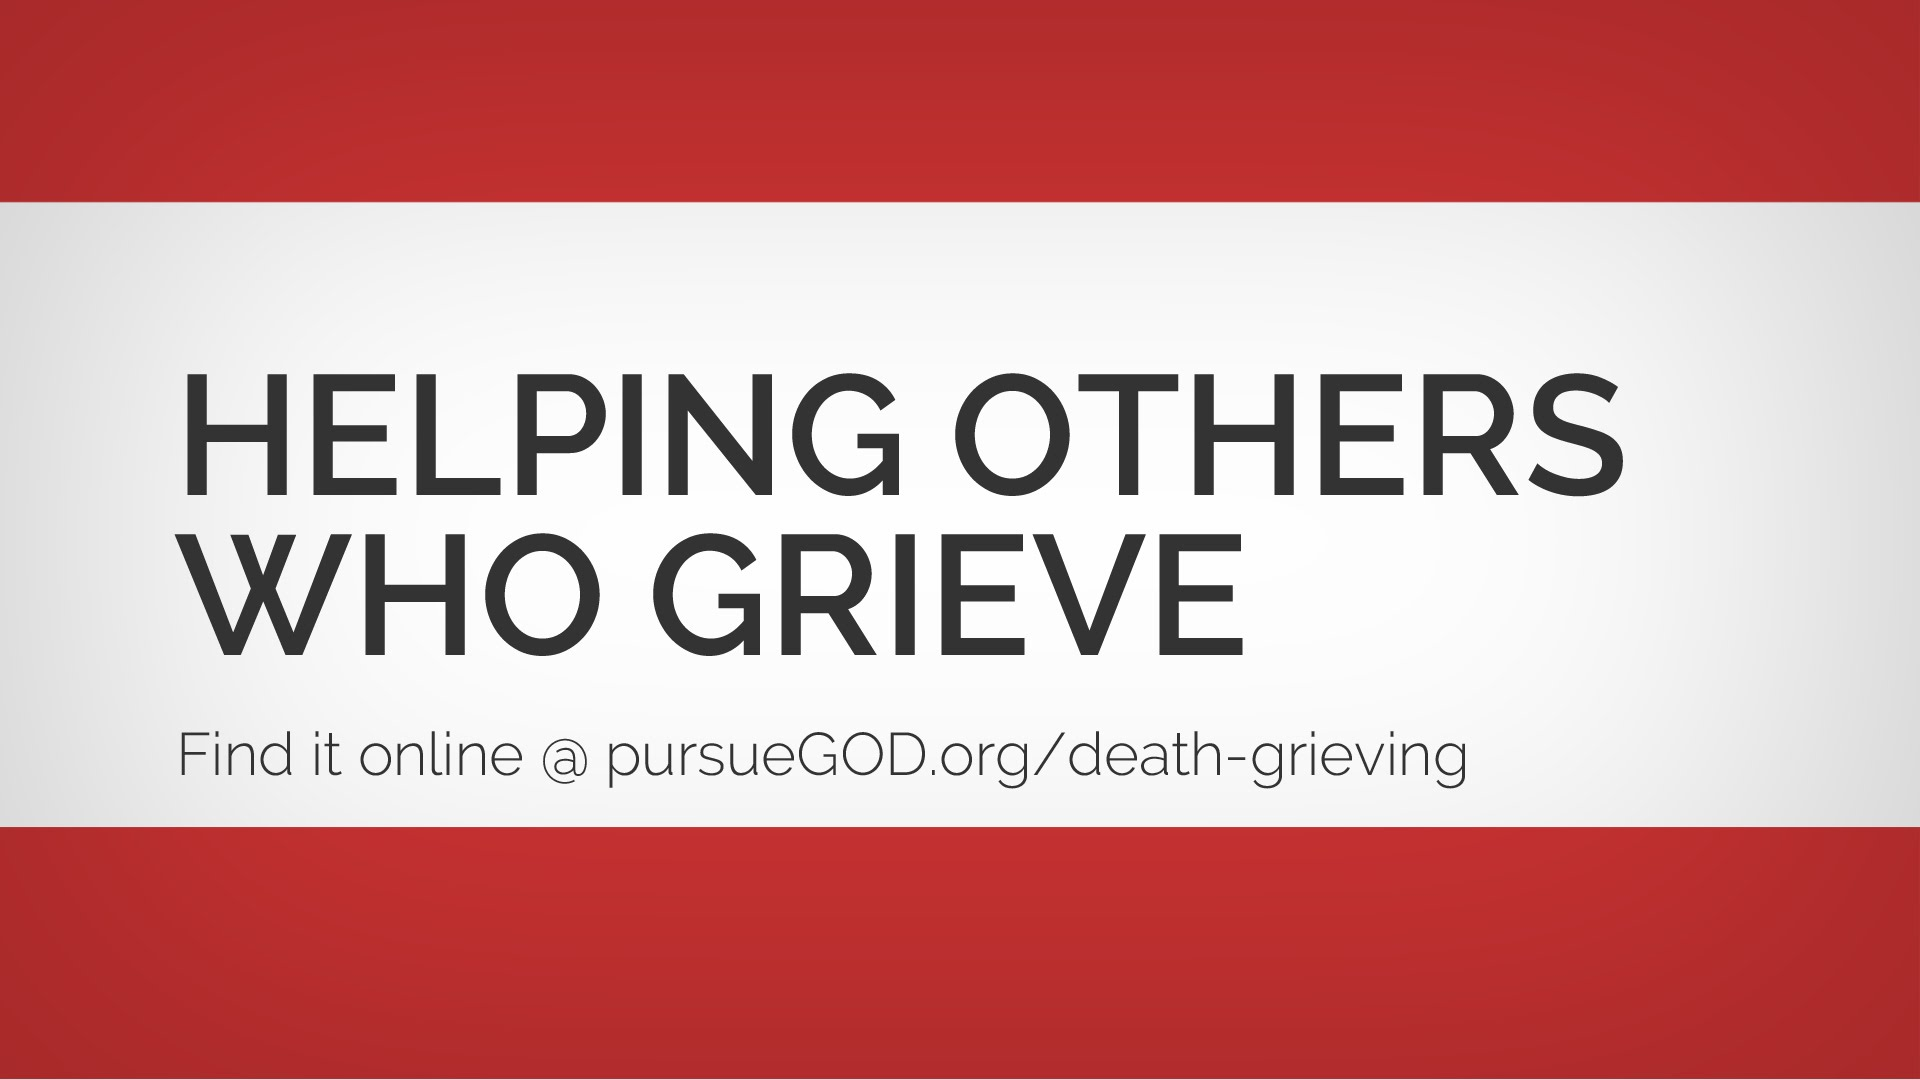 Helping Others Who Grieve